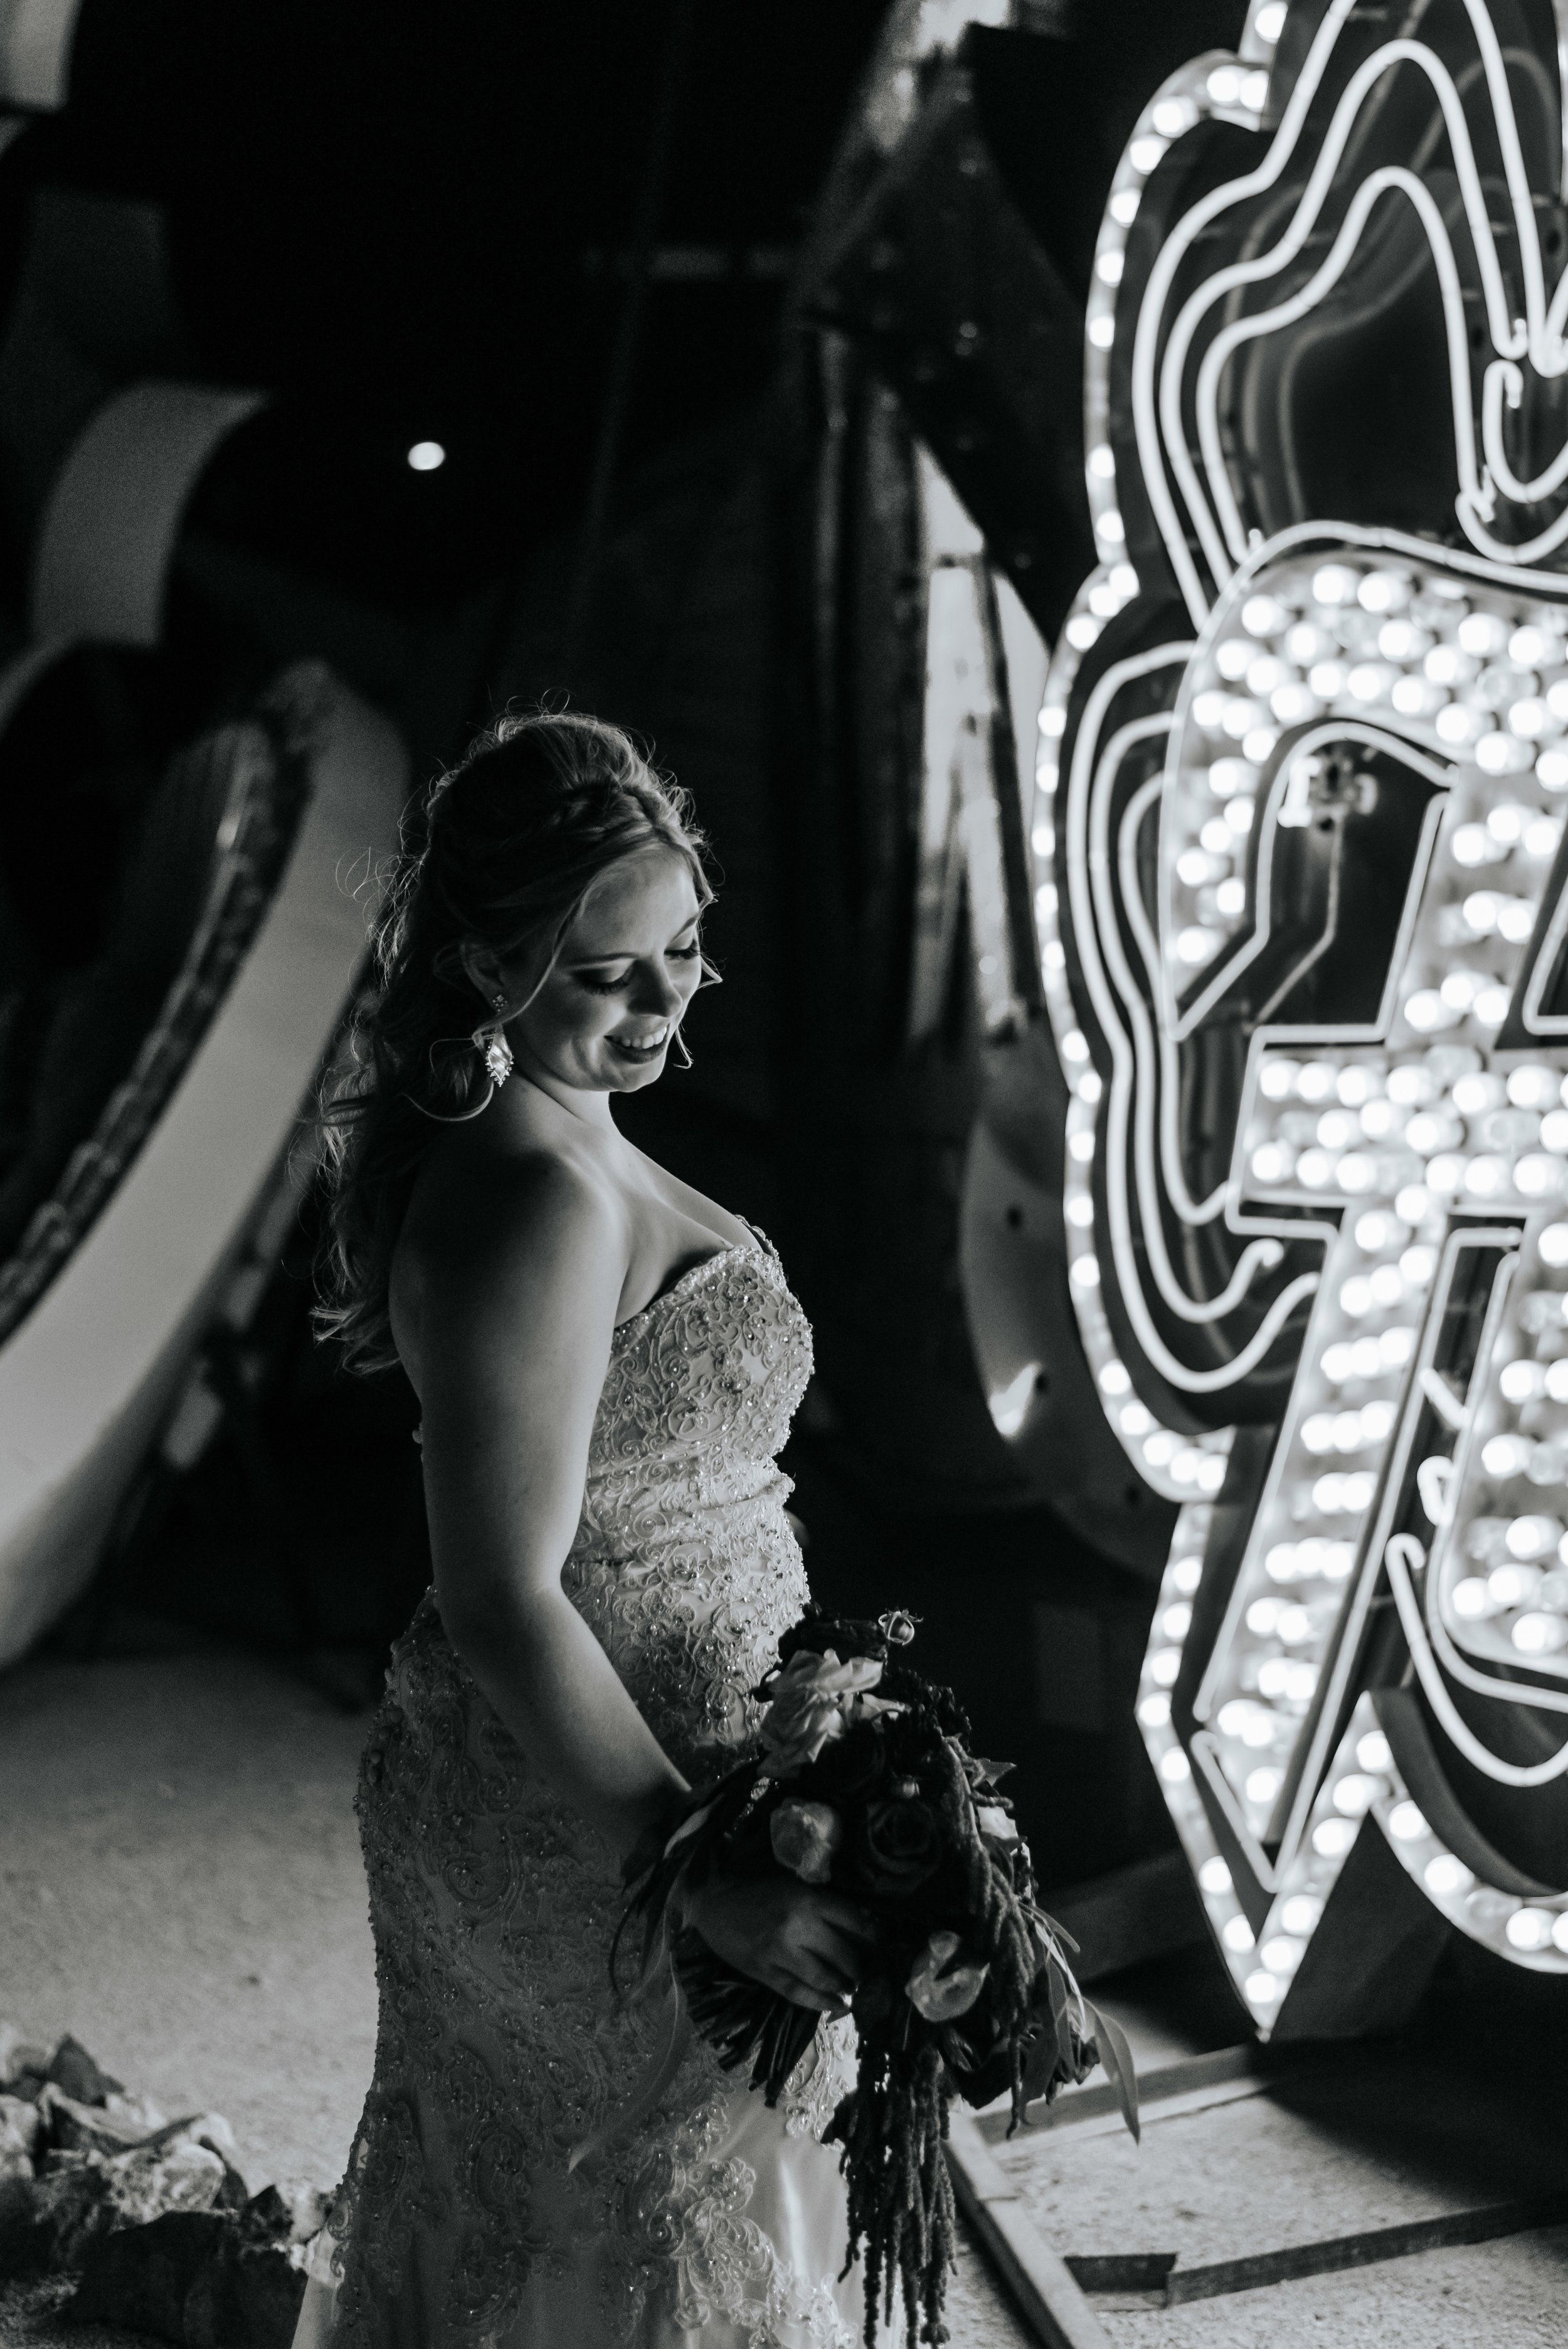 Neon-Museum-Wedding-Las-Vegas-Nevada-Golden-Nugget-Photography-by-V-Ally-and-Dan-7001.jpg